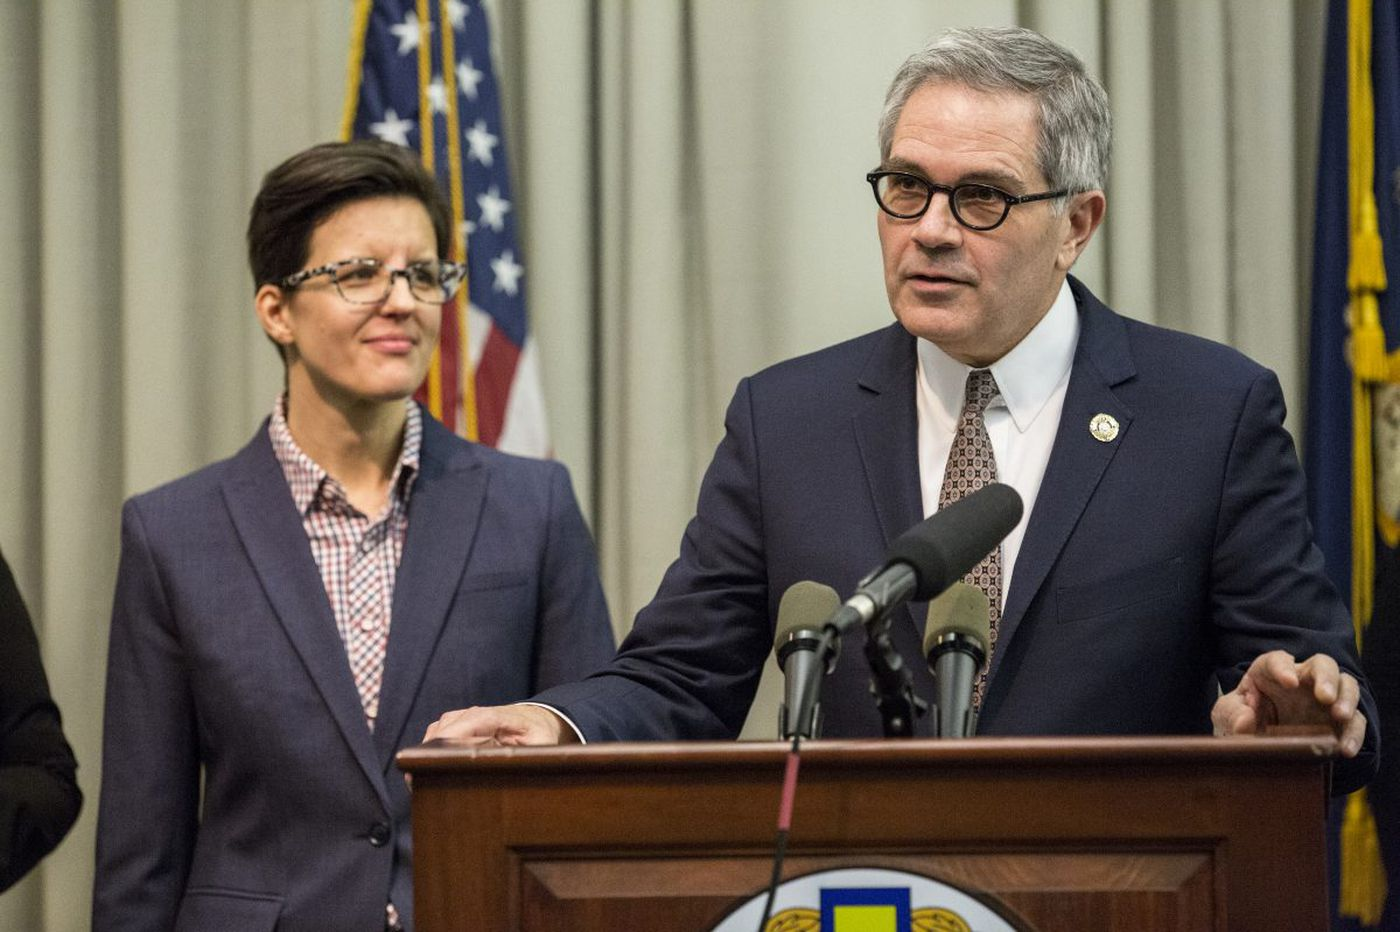 Krasner will seek to prevent deportation of immigrants accused of nonviolent crimes